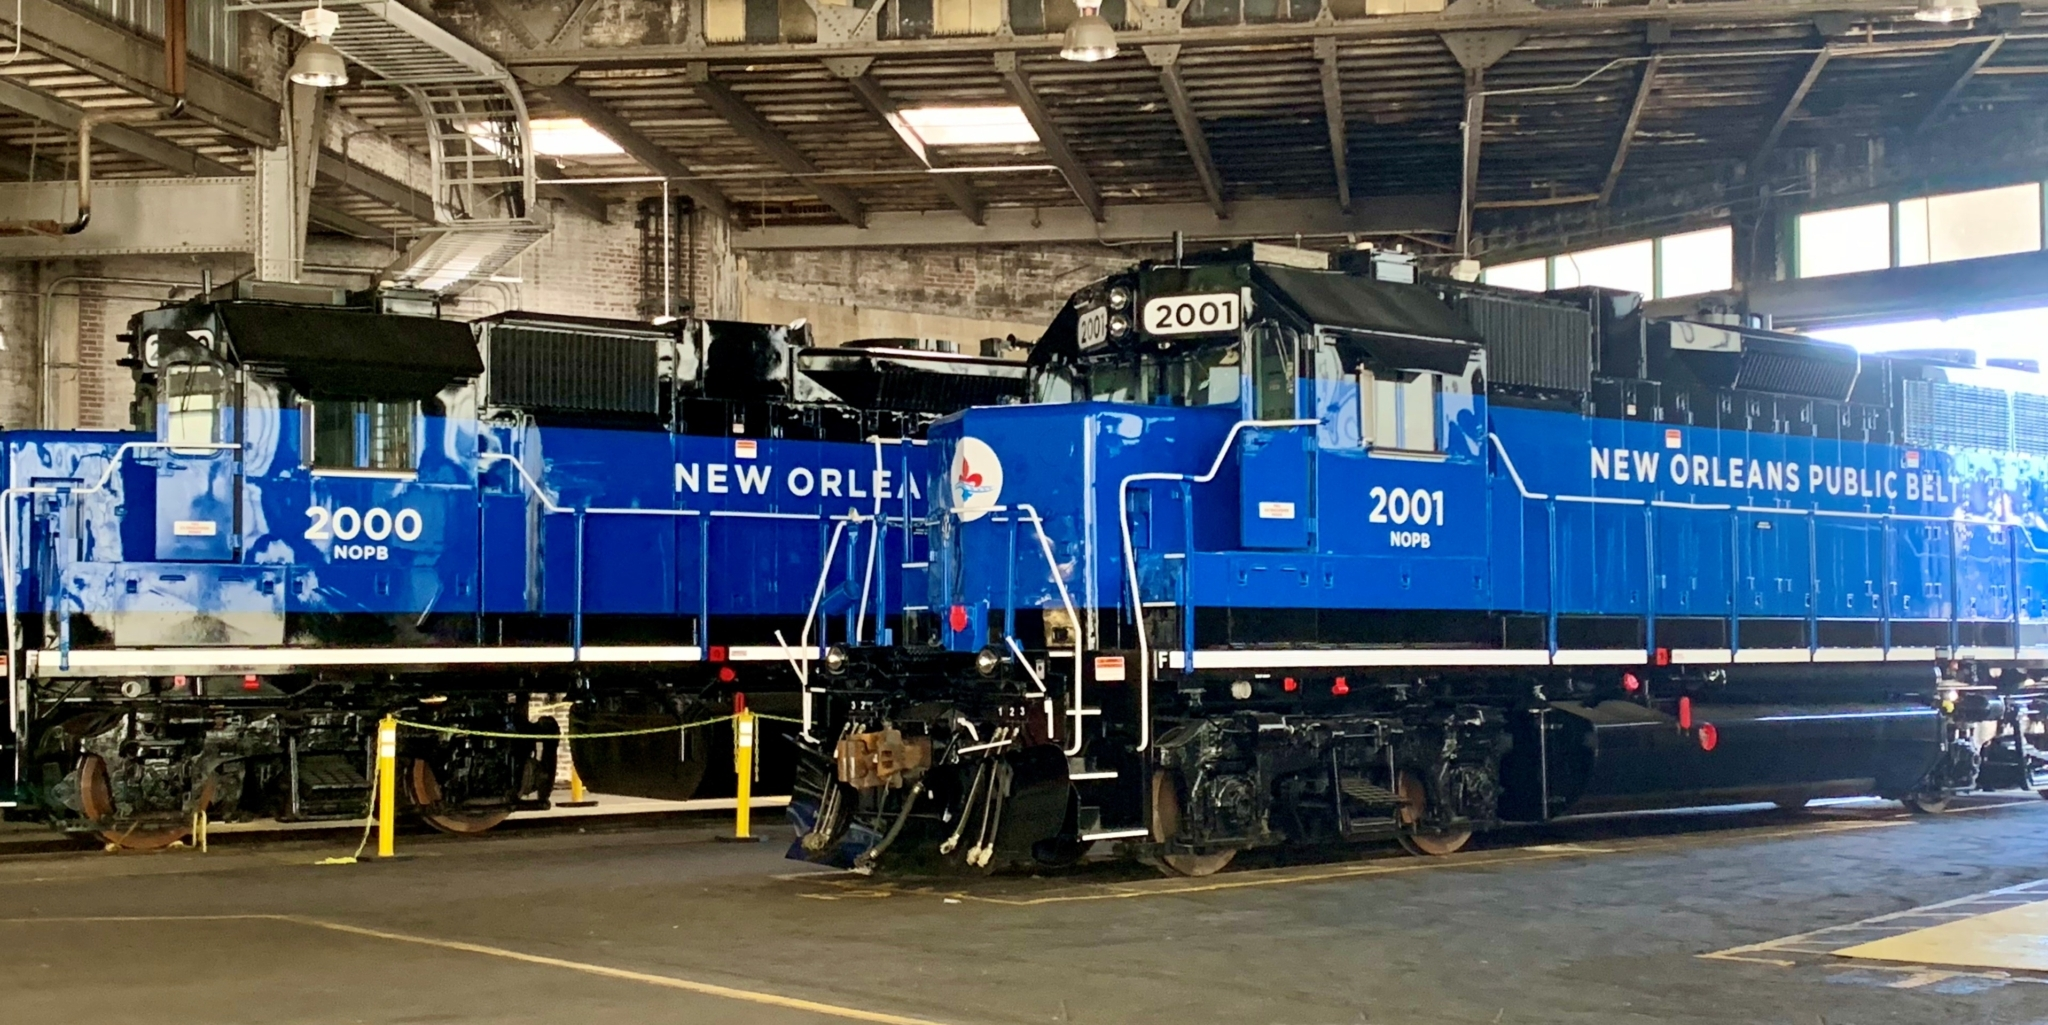 New Orleans Public Belt New EMD Locomotive